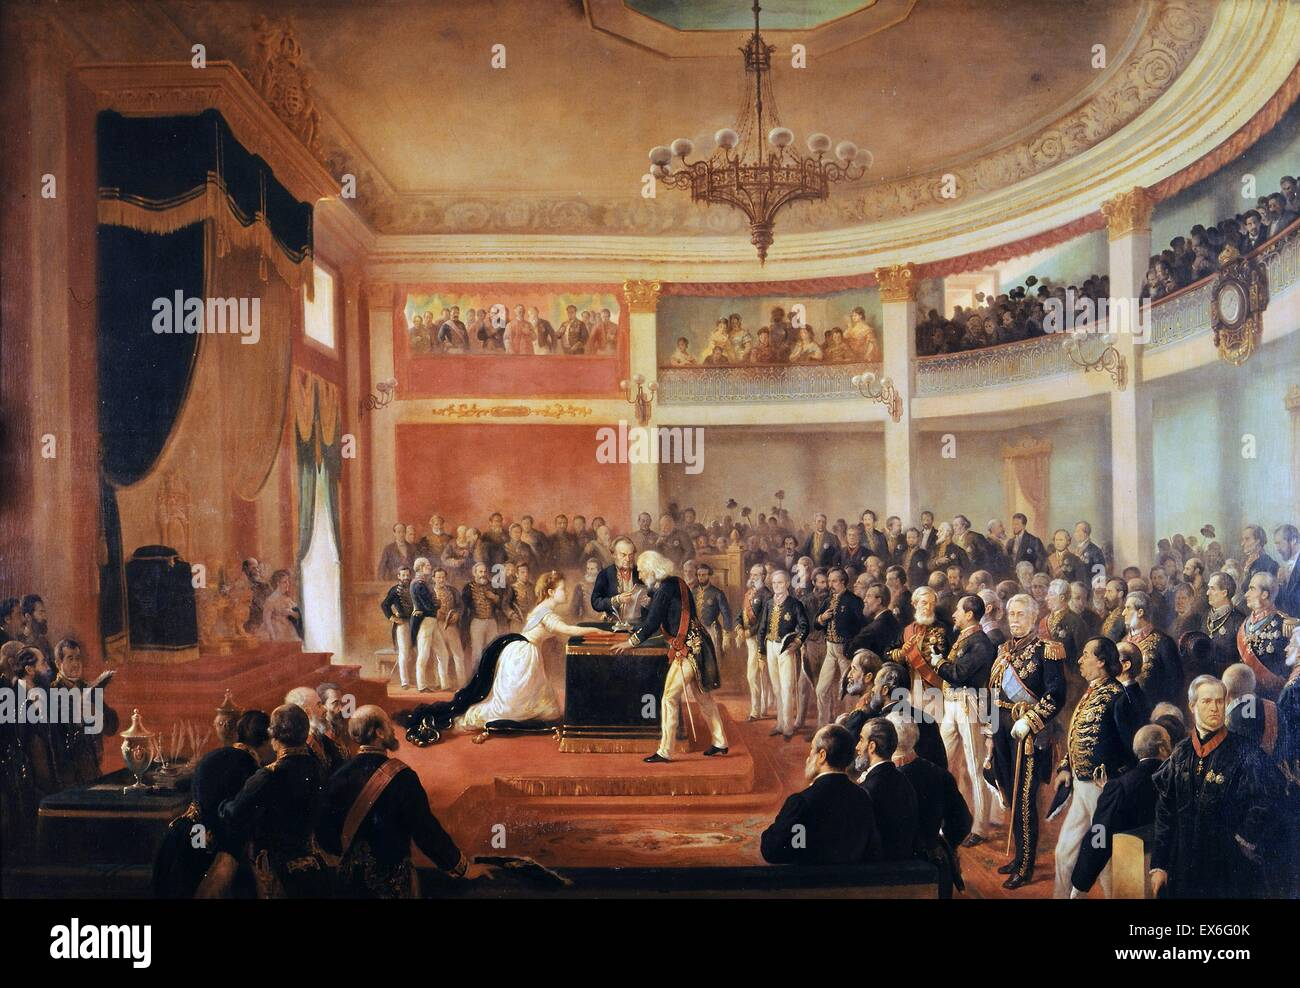 The Oath of the Princess Imperial Isabel, as Regent of the Empire of Brazil, circa 1870. Stock Photo